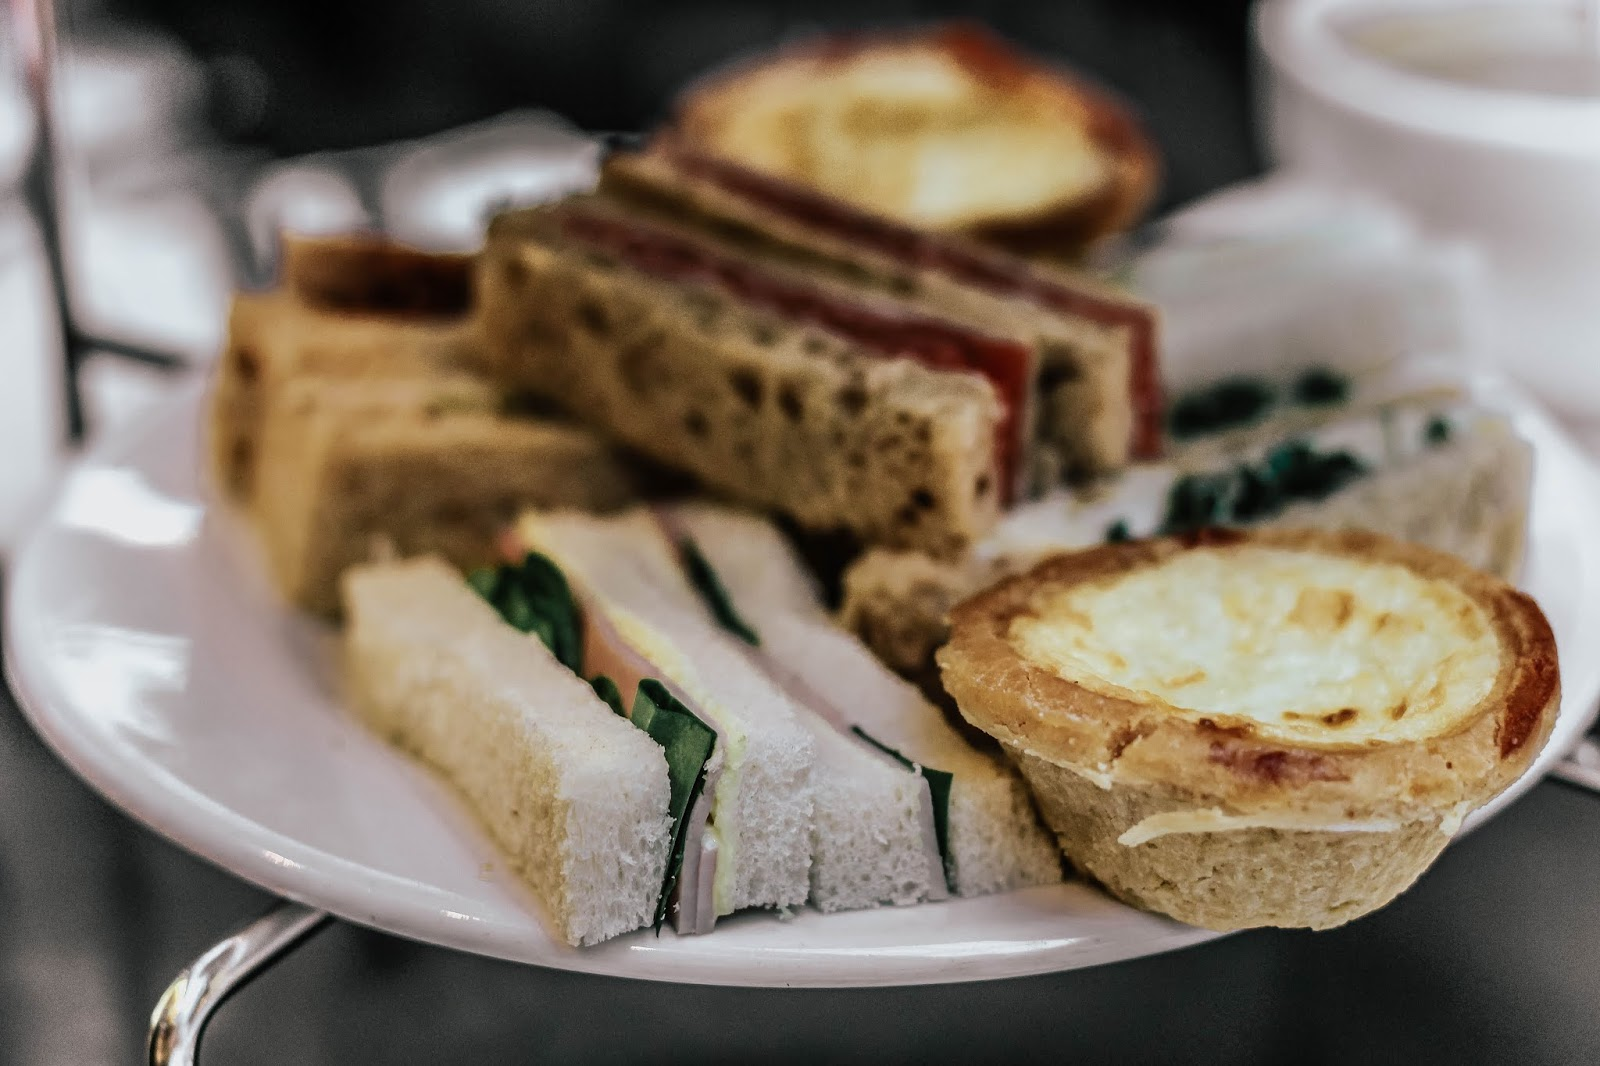 Patisserie Valerie Afternoon Tea Sandwiches